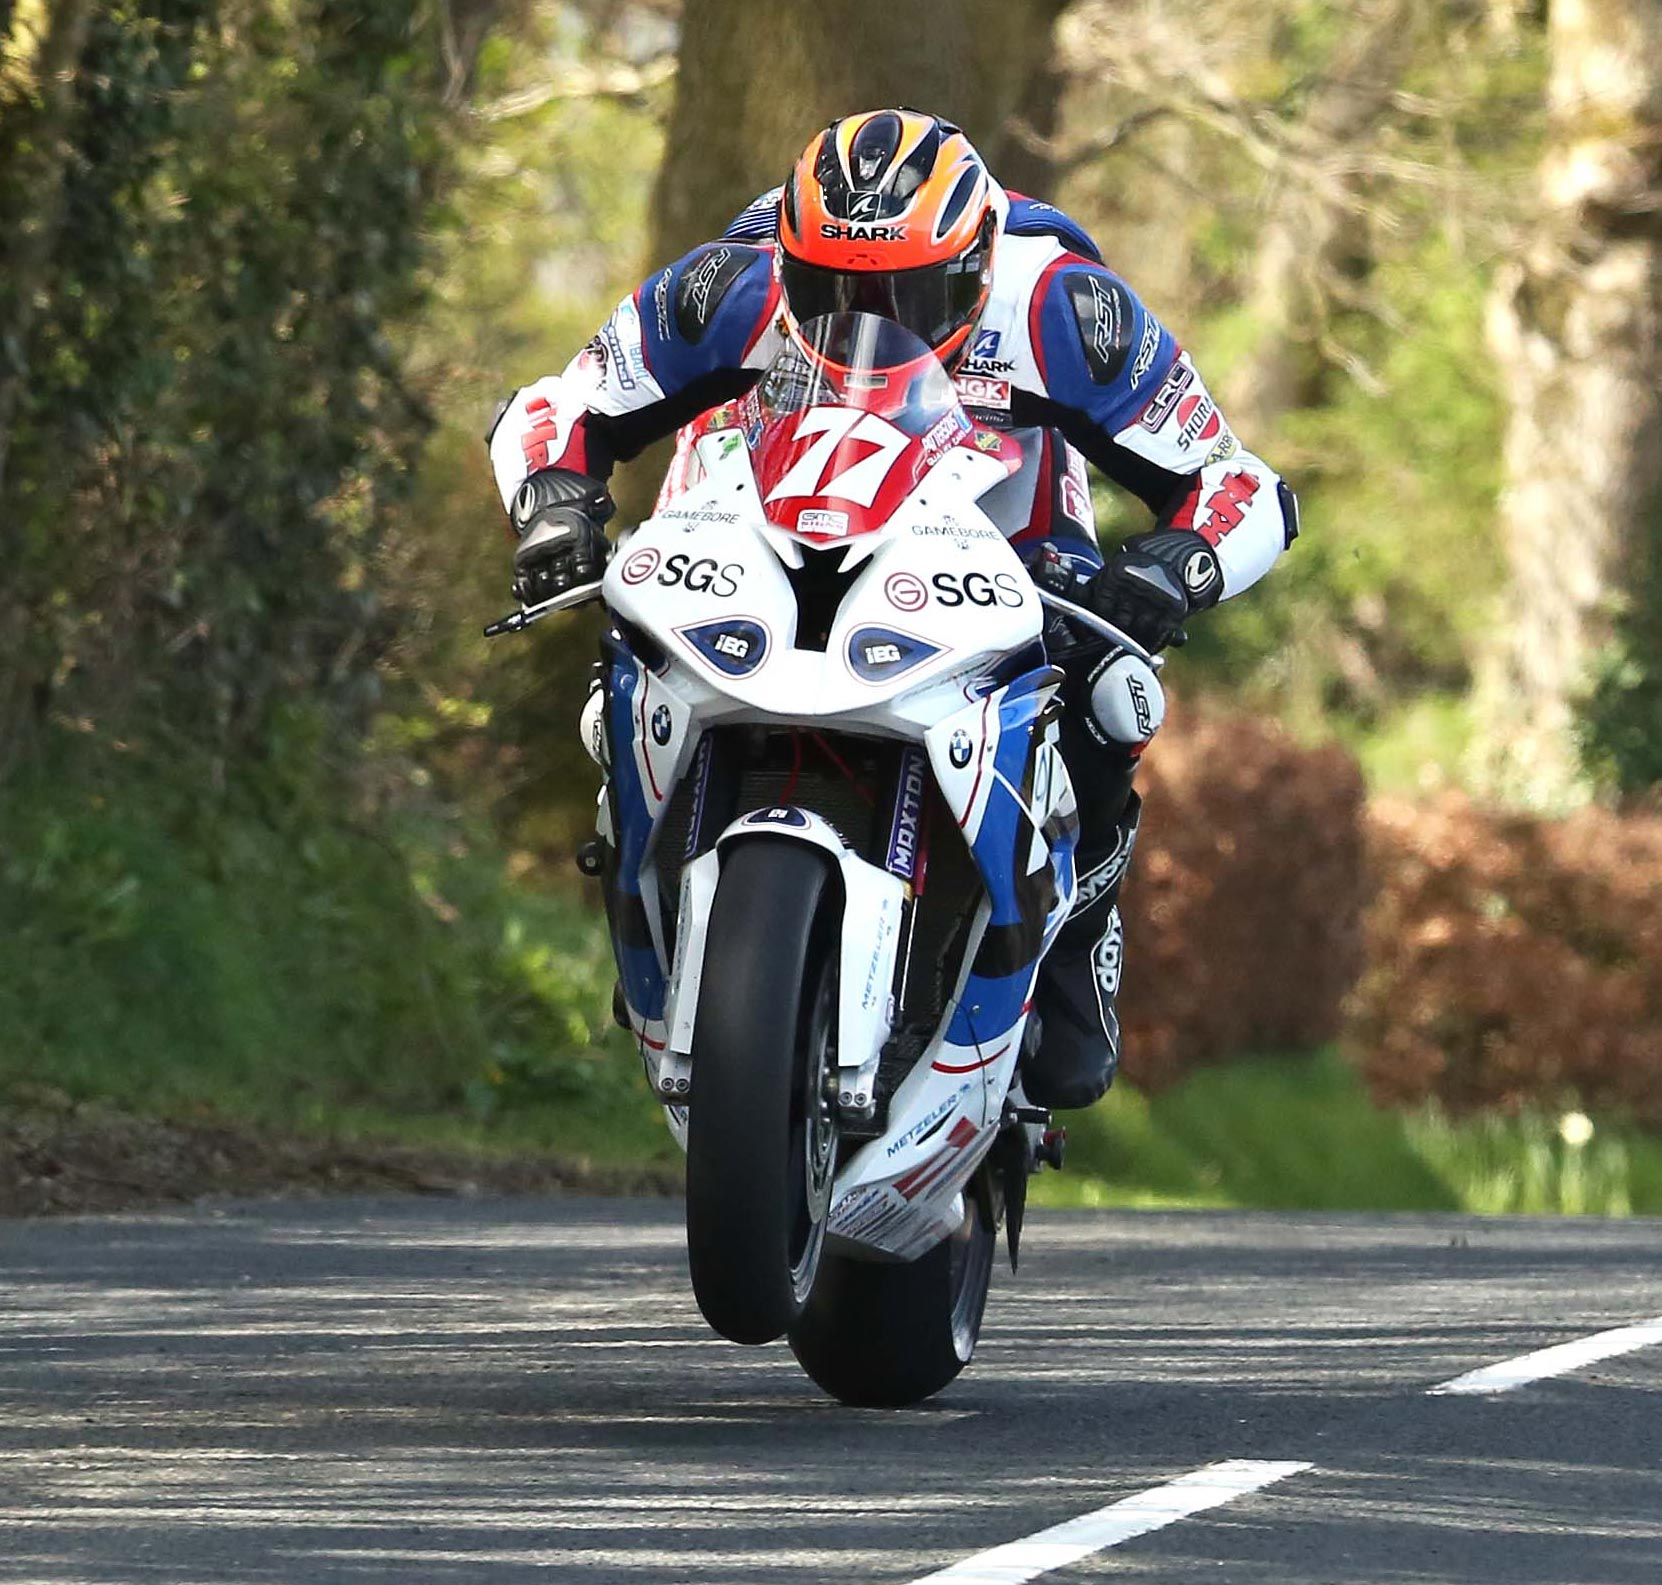 Ryan Farquhar in action on the IEG BMW - Pictures by Stephen Davison – Pacemaker Press International